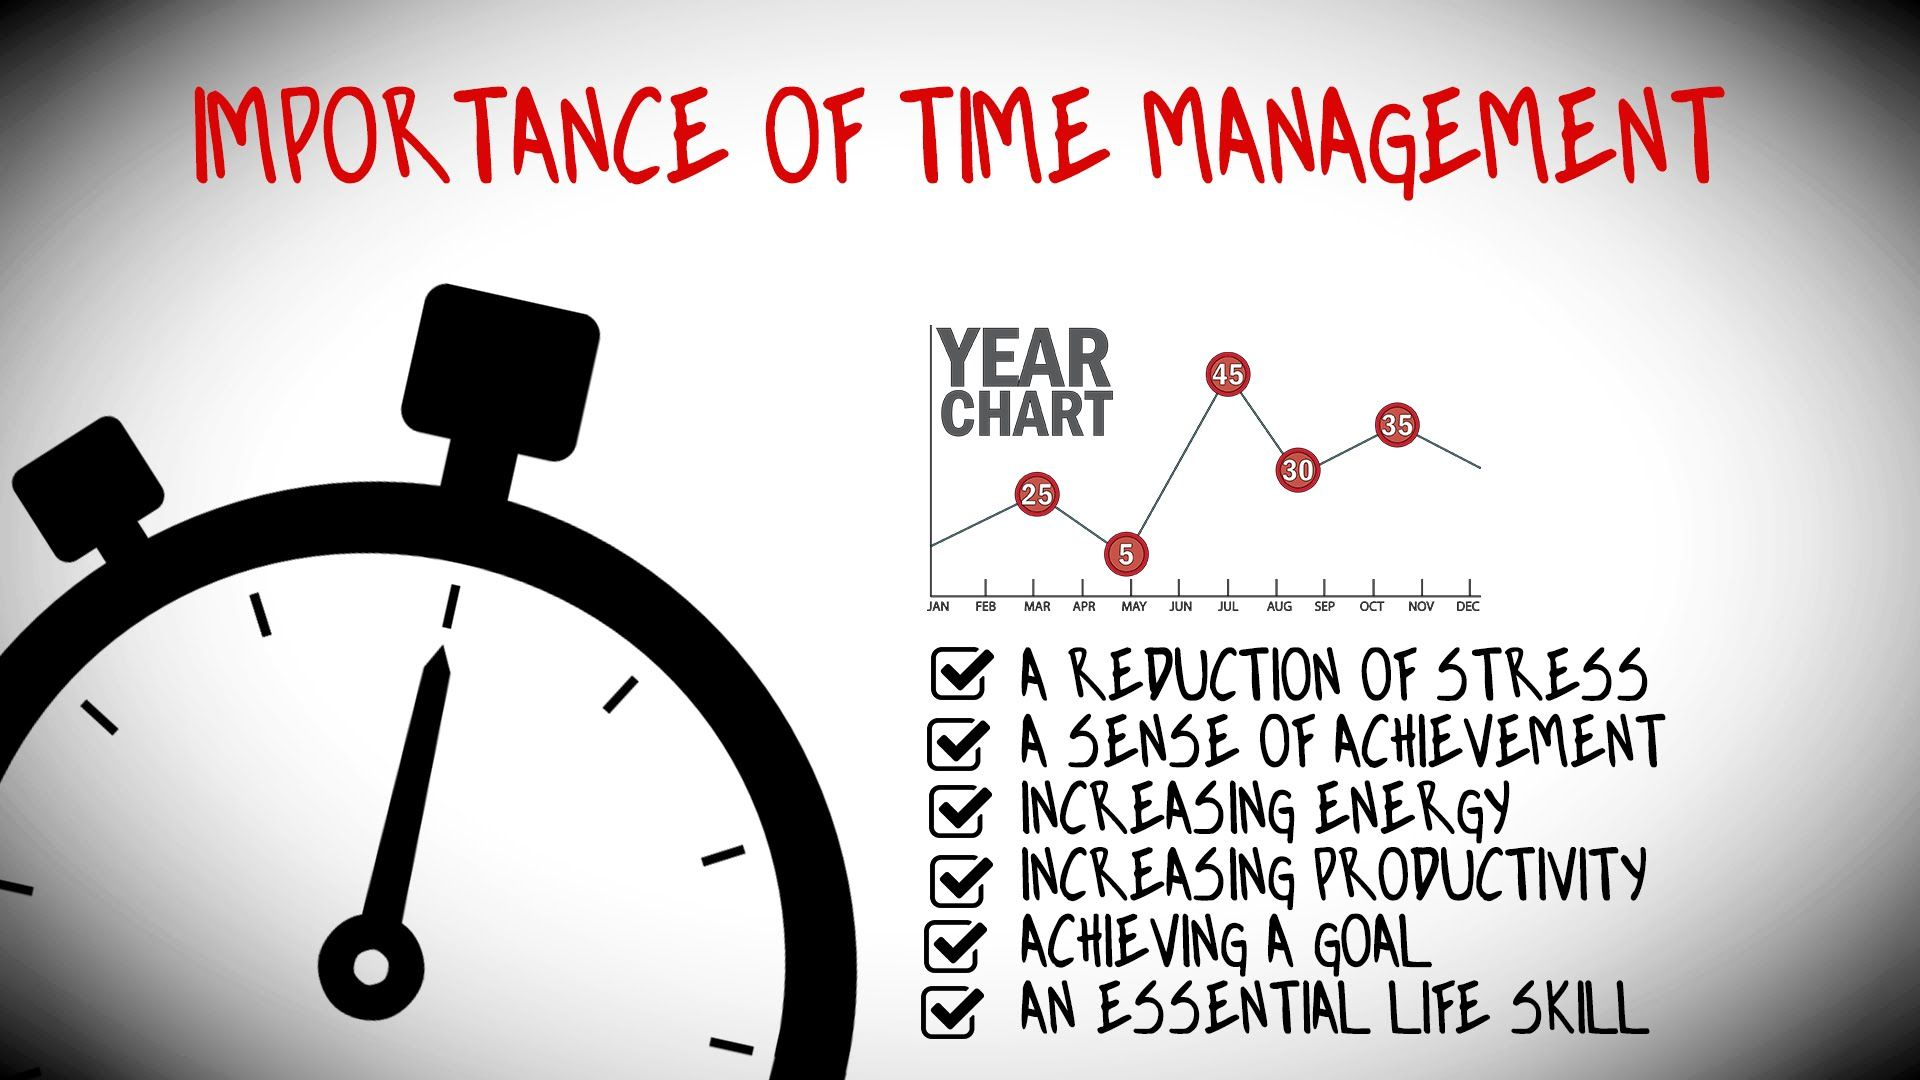 Importance Of Time Management For Better Life Style Https Www Youtube Com Watch V A9wfby4wbqg Management Skills Importance Of Time Management Time Management